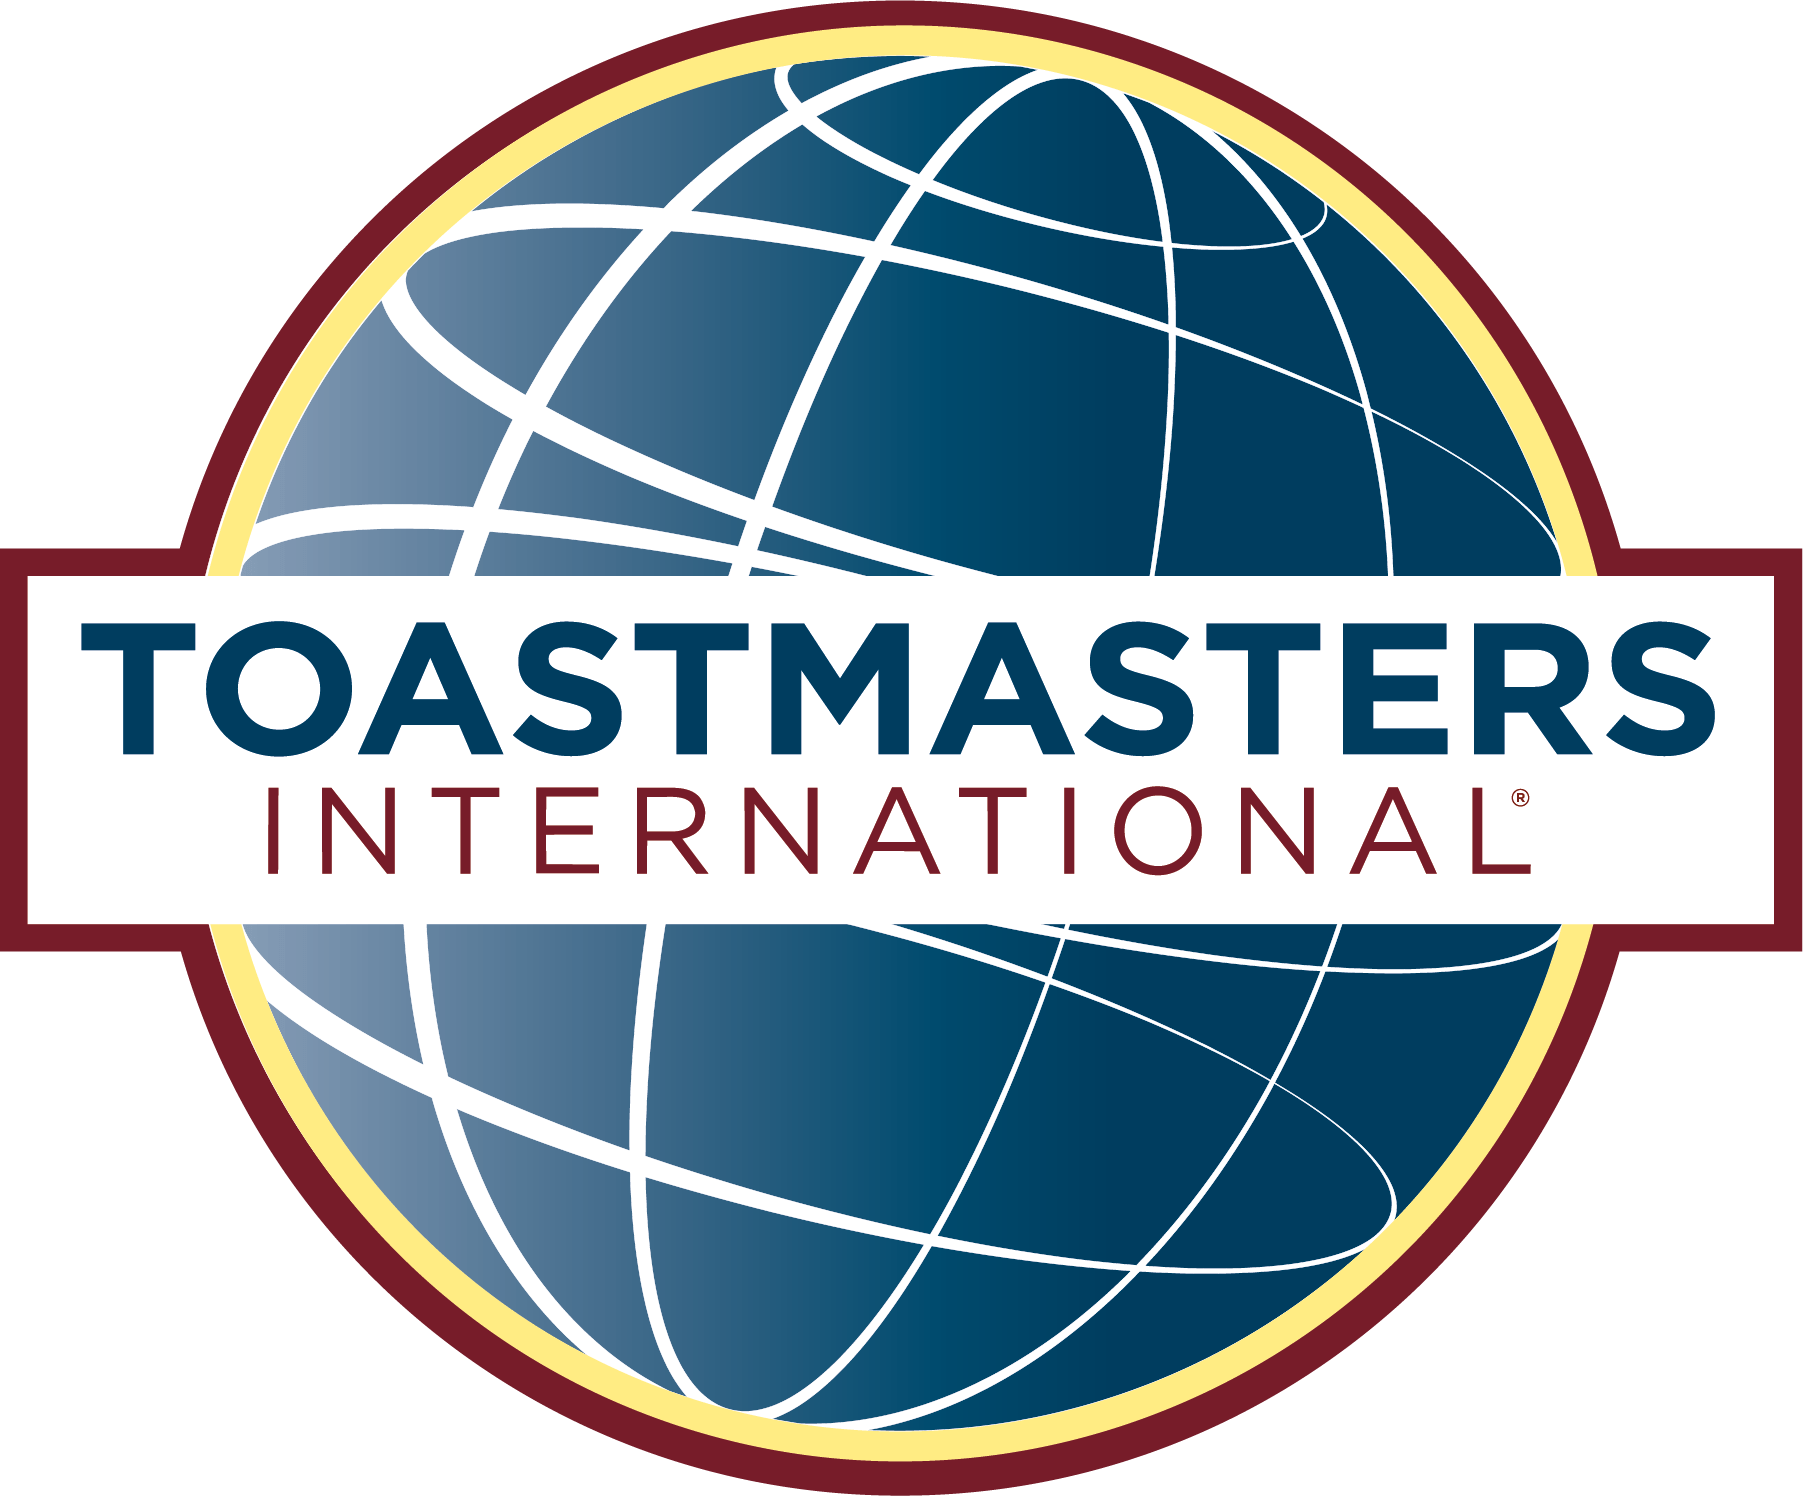 A Toastmasters International Club